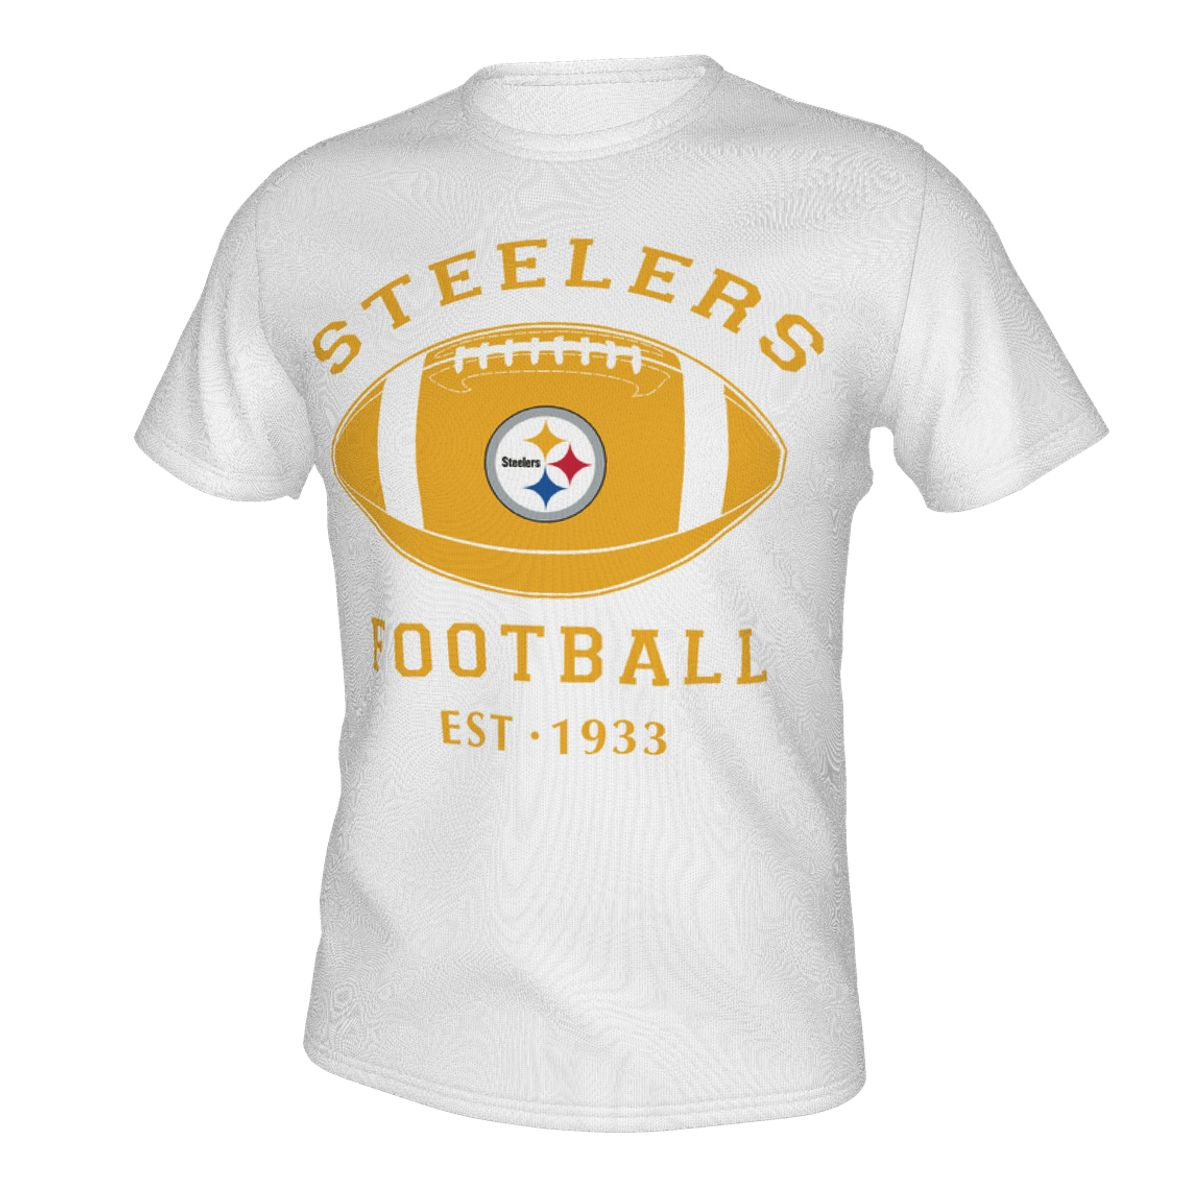 Footabll Steelers T-shirts For Men